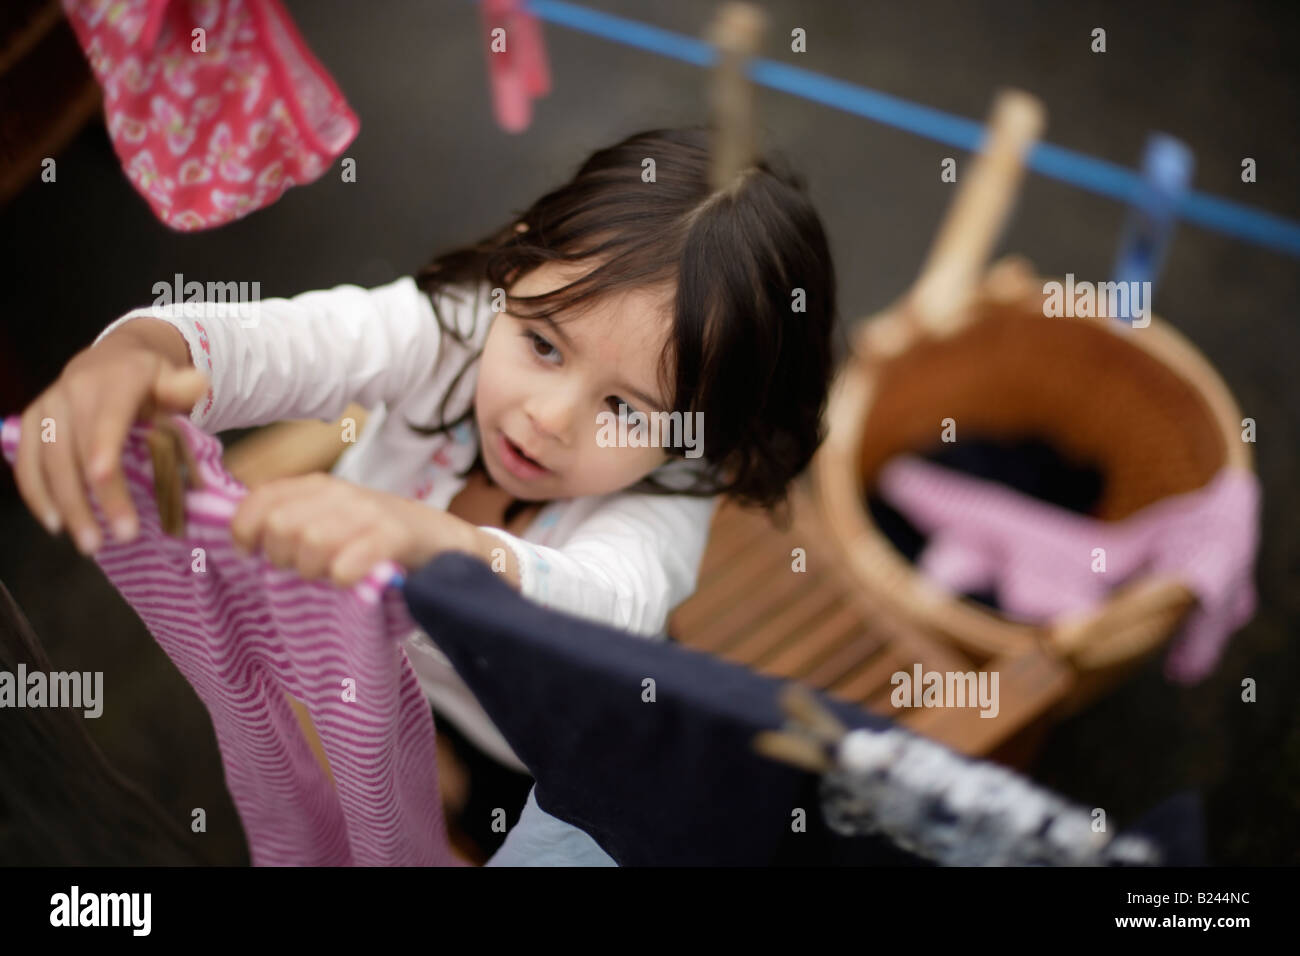 Hanging laundry on washing line to dry girl aged five and brother six - Stock Image